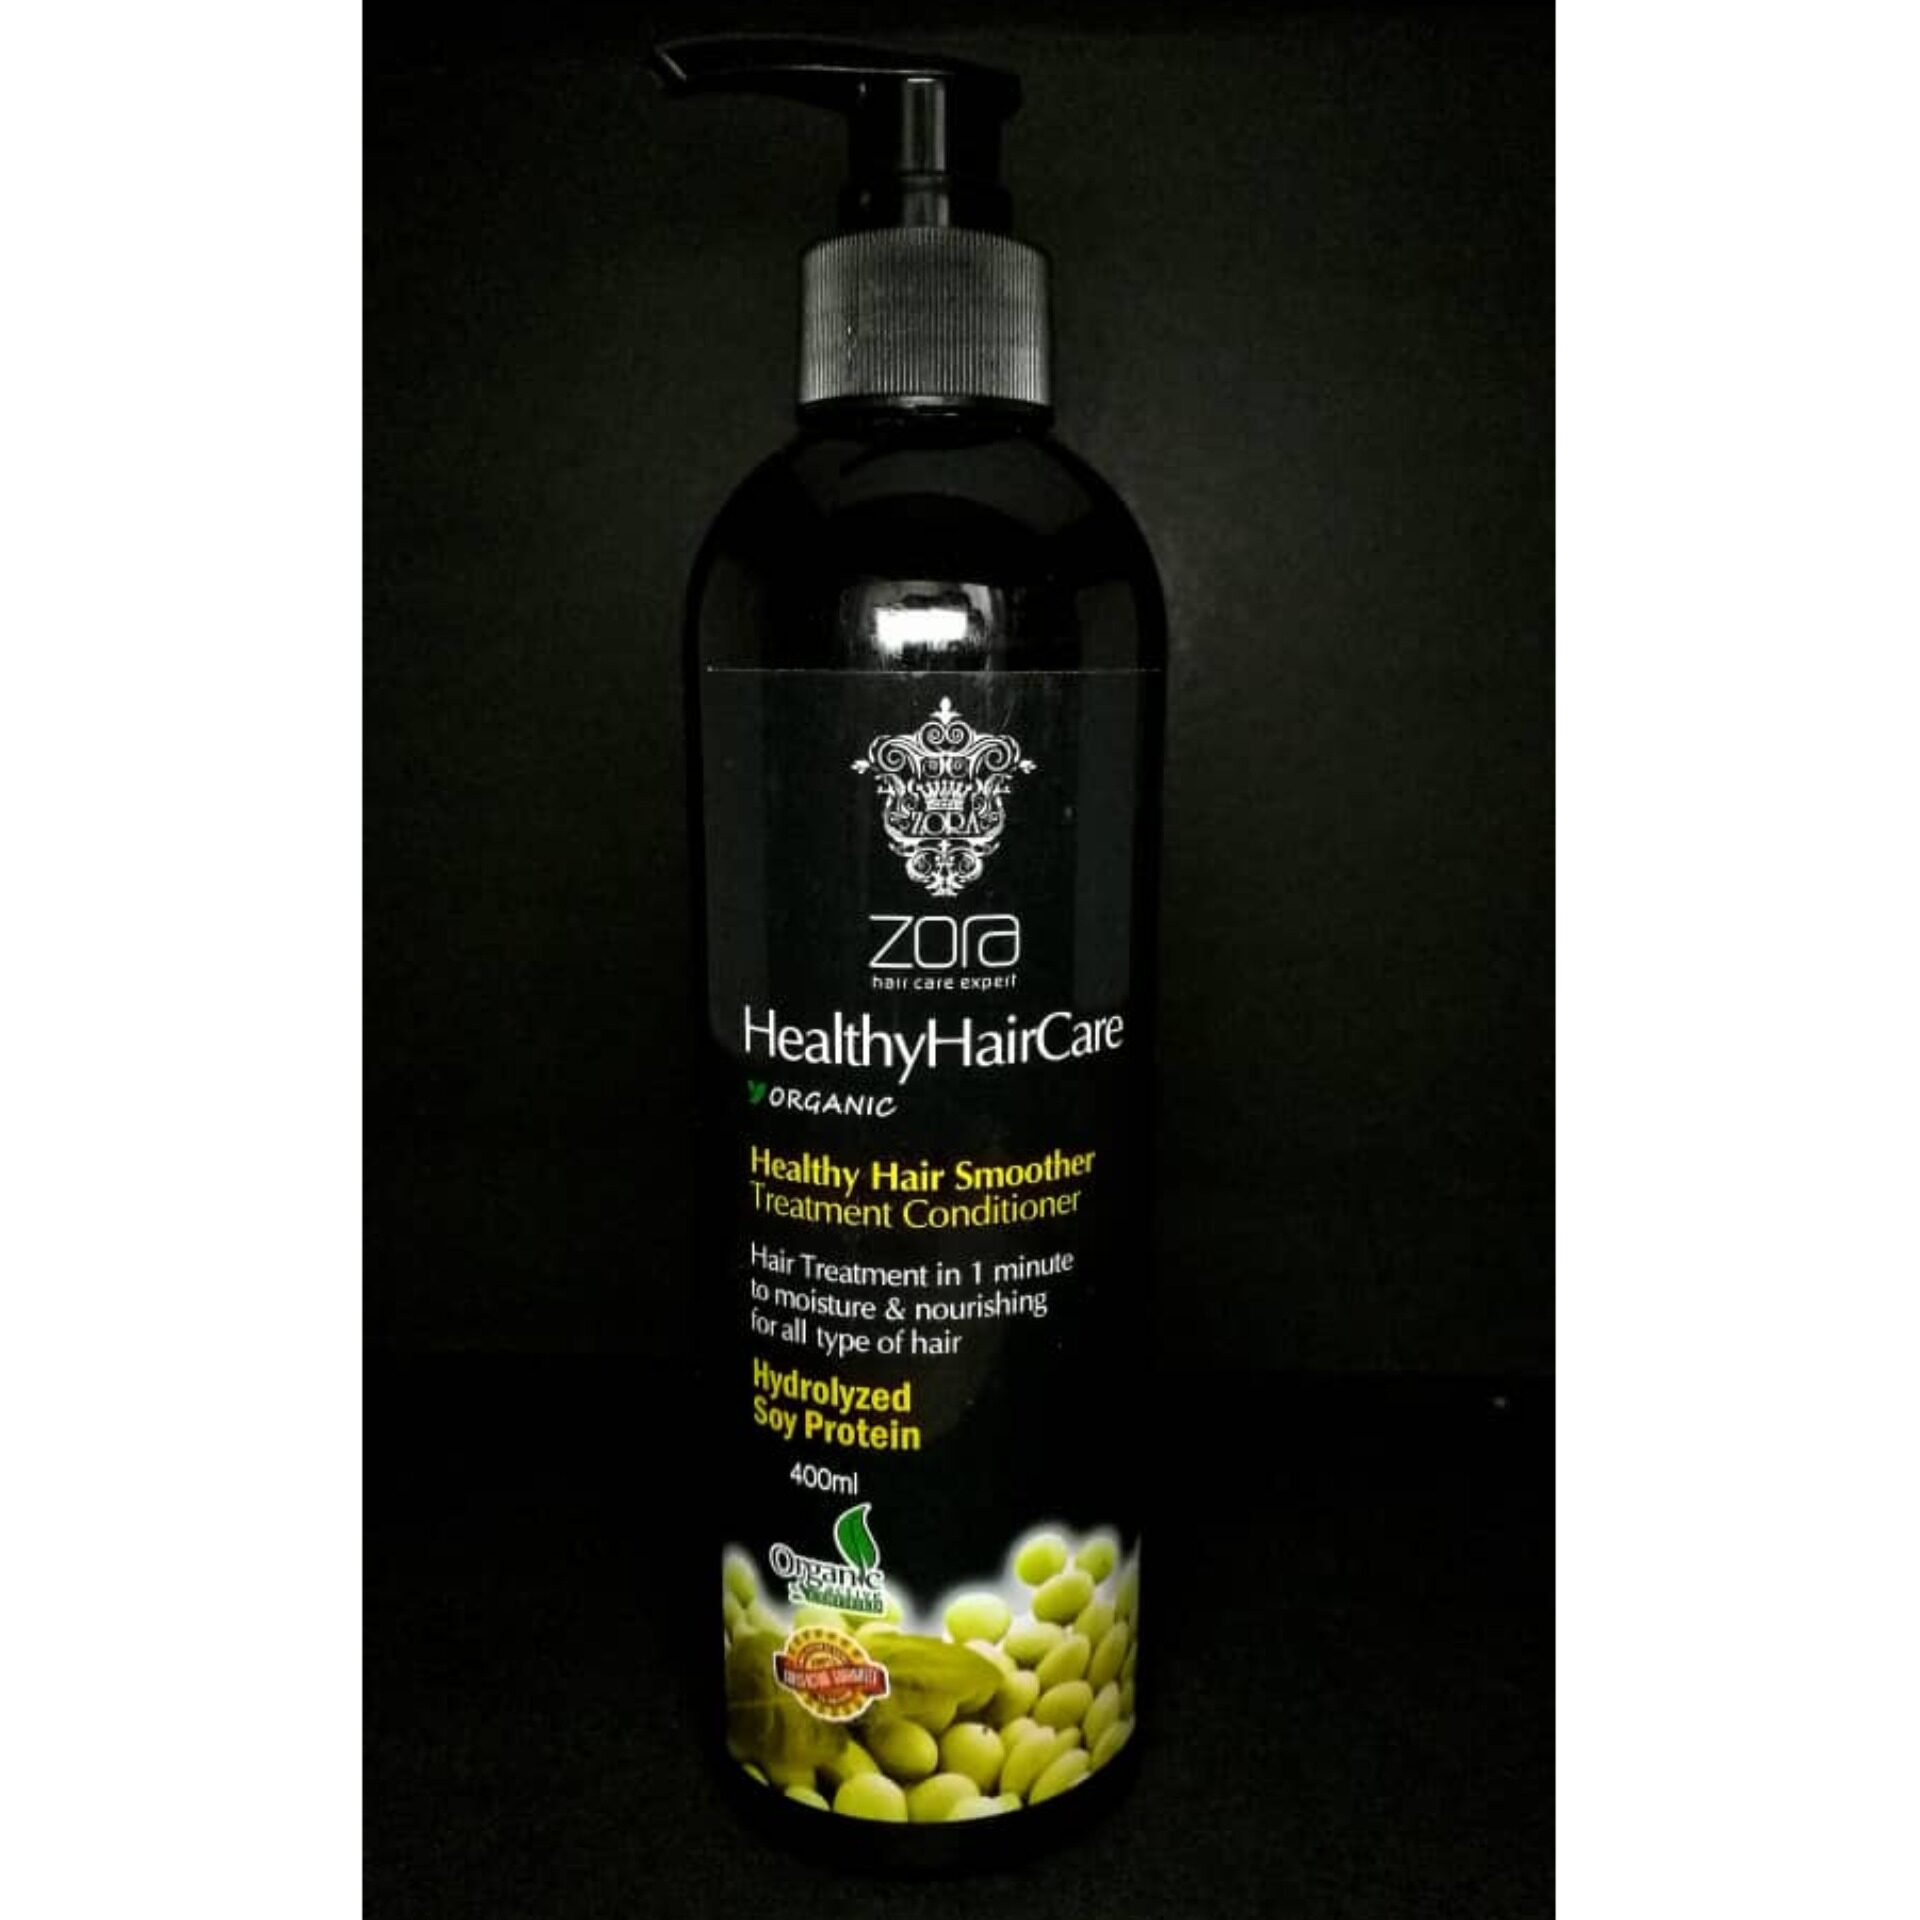 Jarayc Healthy Hair Smoother Treatment Conditioner   Hydrolyzed Soy Protein 400ml